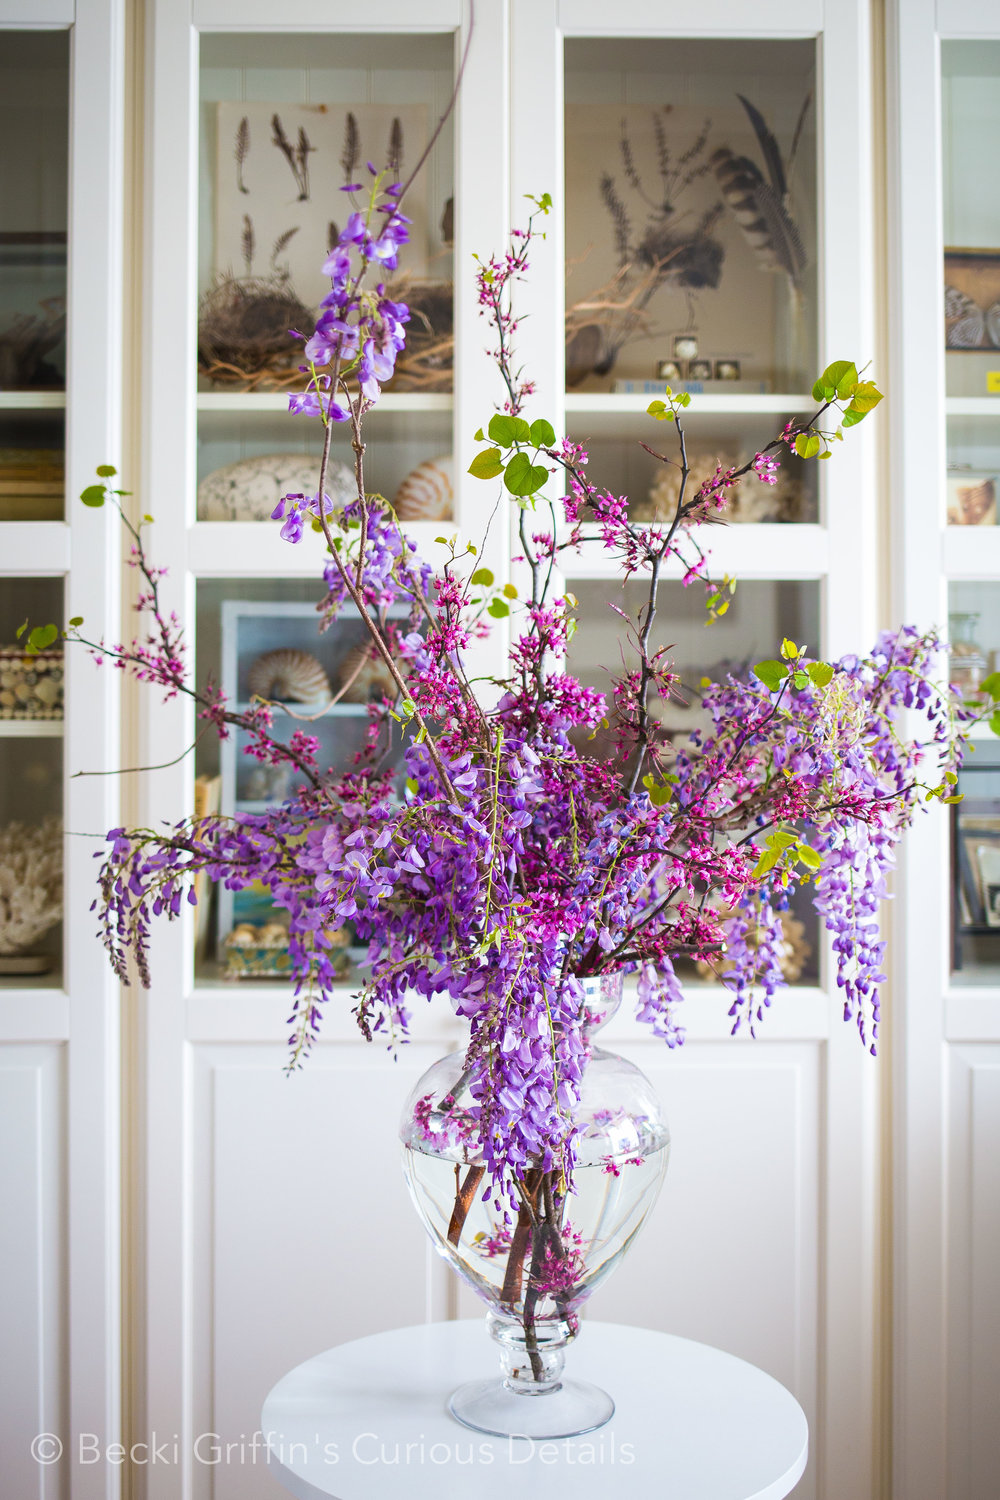 Wisteria: Becki Griffin's Curious Details